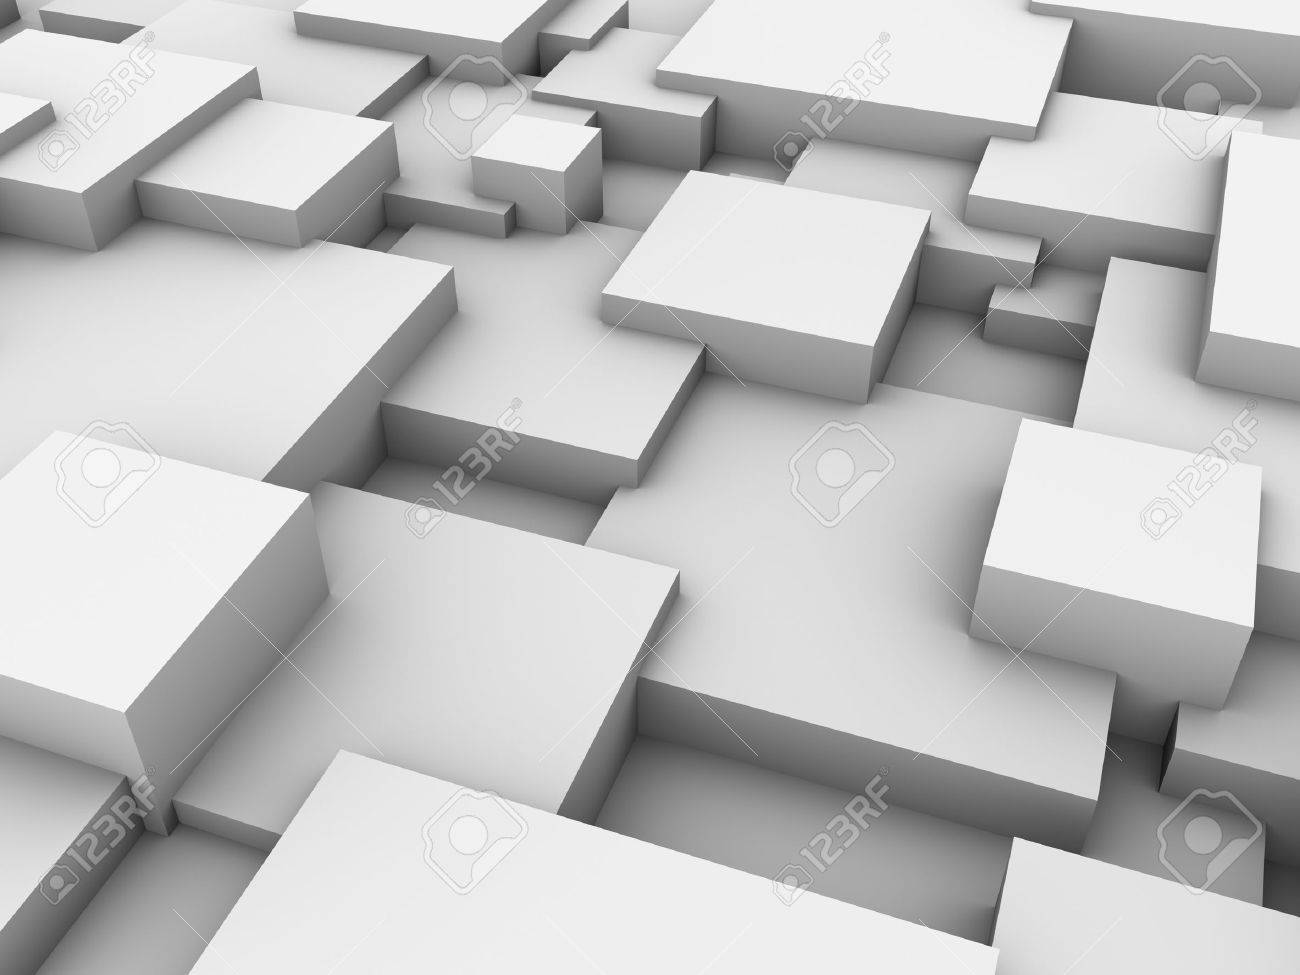 Abstract background of 3d blocks - 13097513